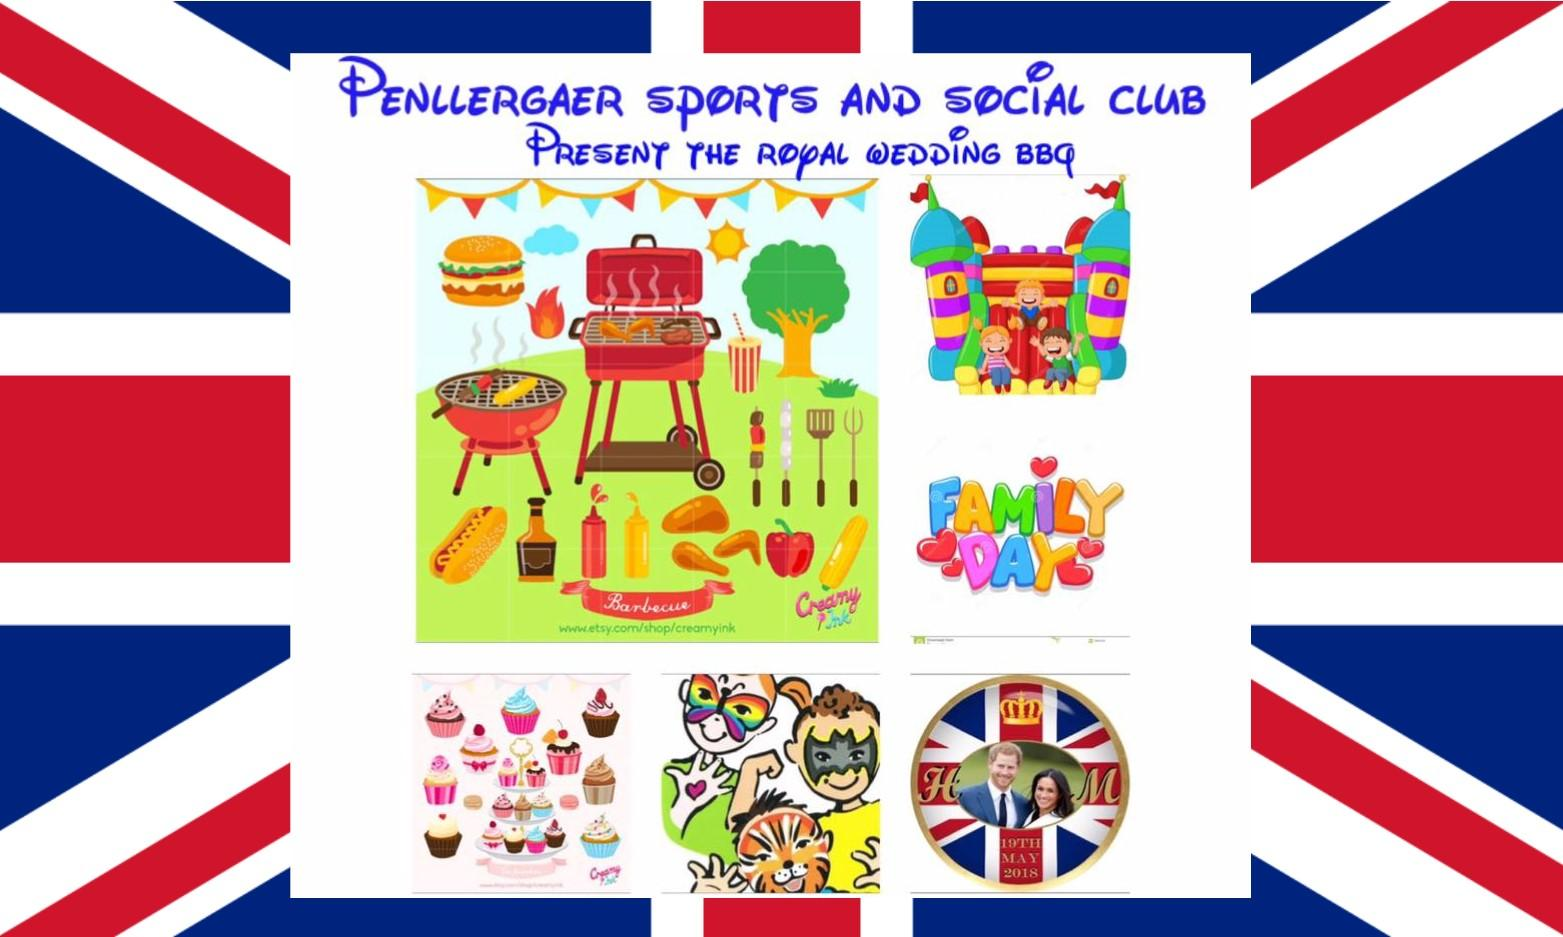 Penllergaer Sports and Social Club Family Fun